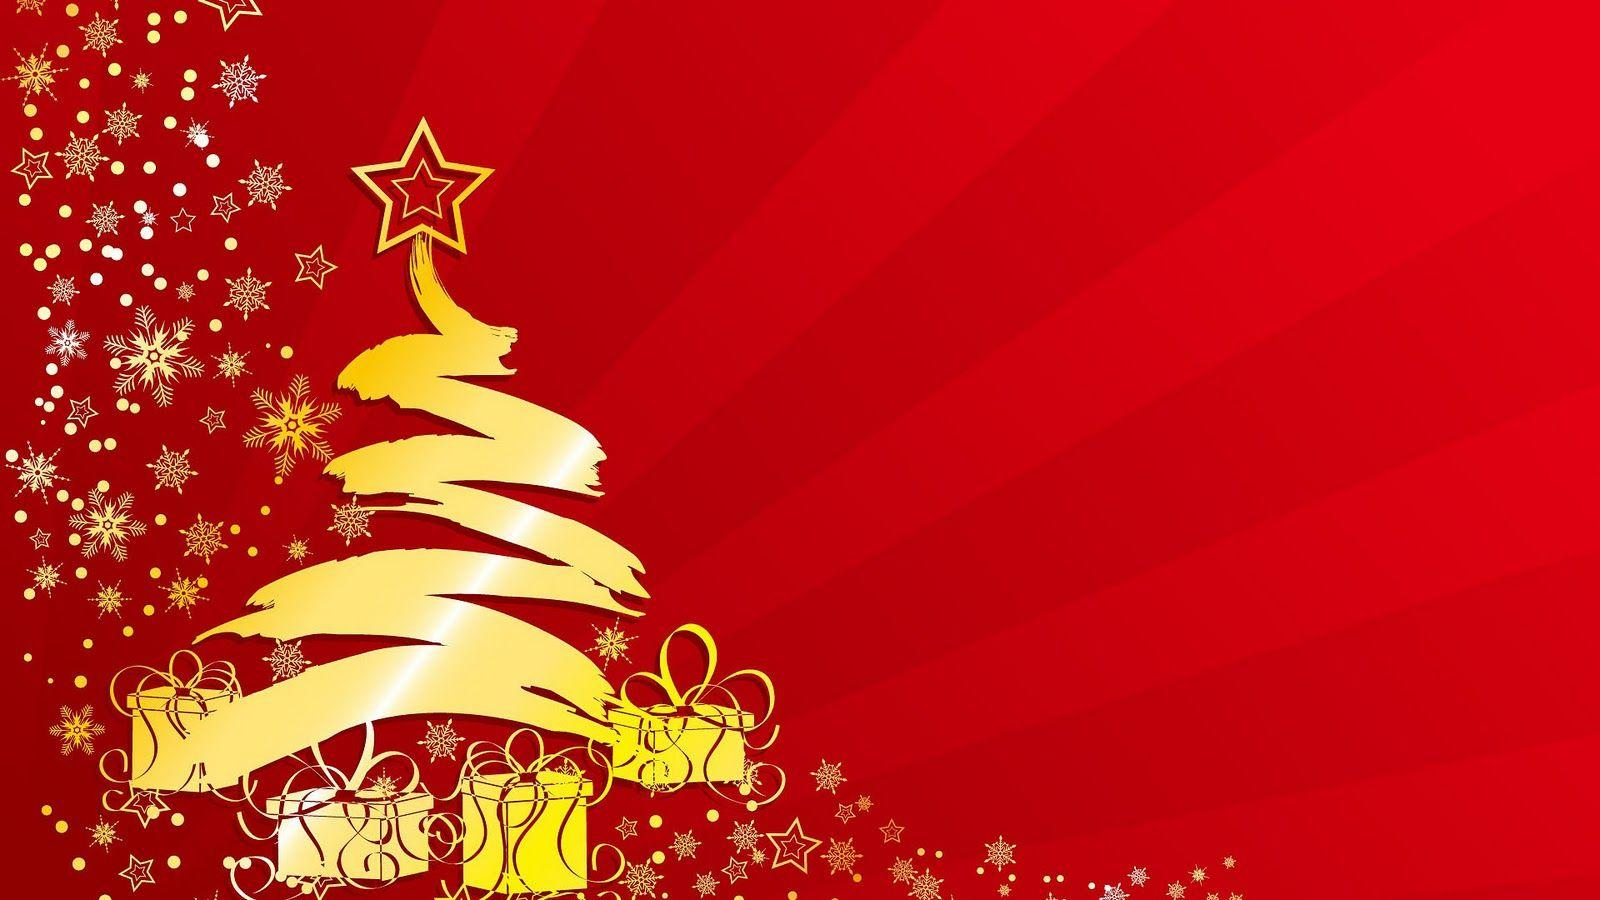 Christian christmas desktop wallpapers wallpaper cave for Red and yellow christmas tree